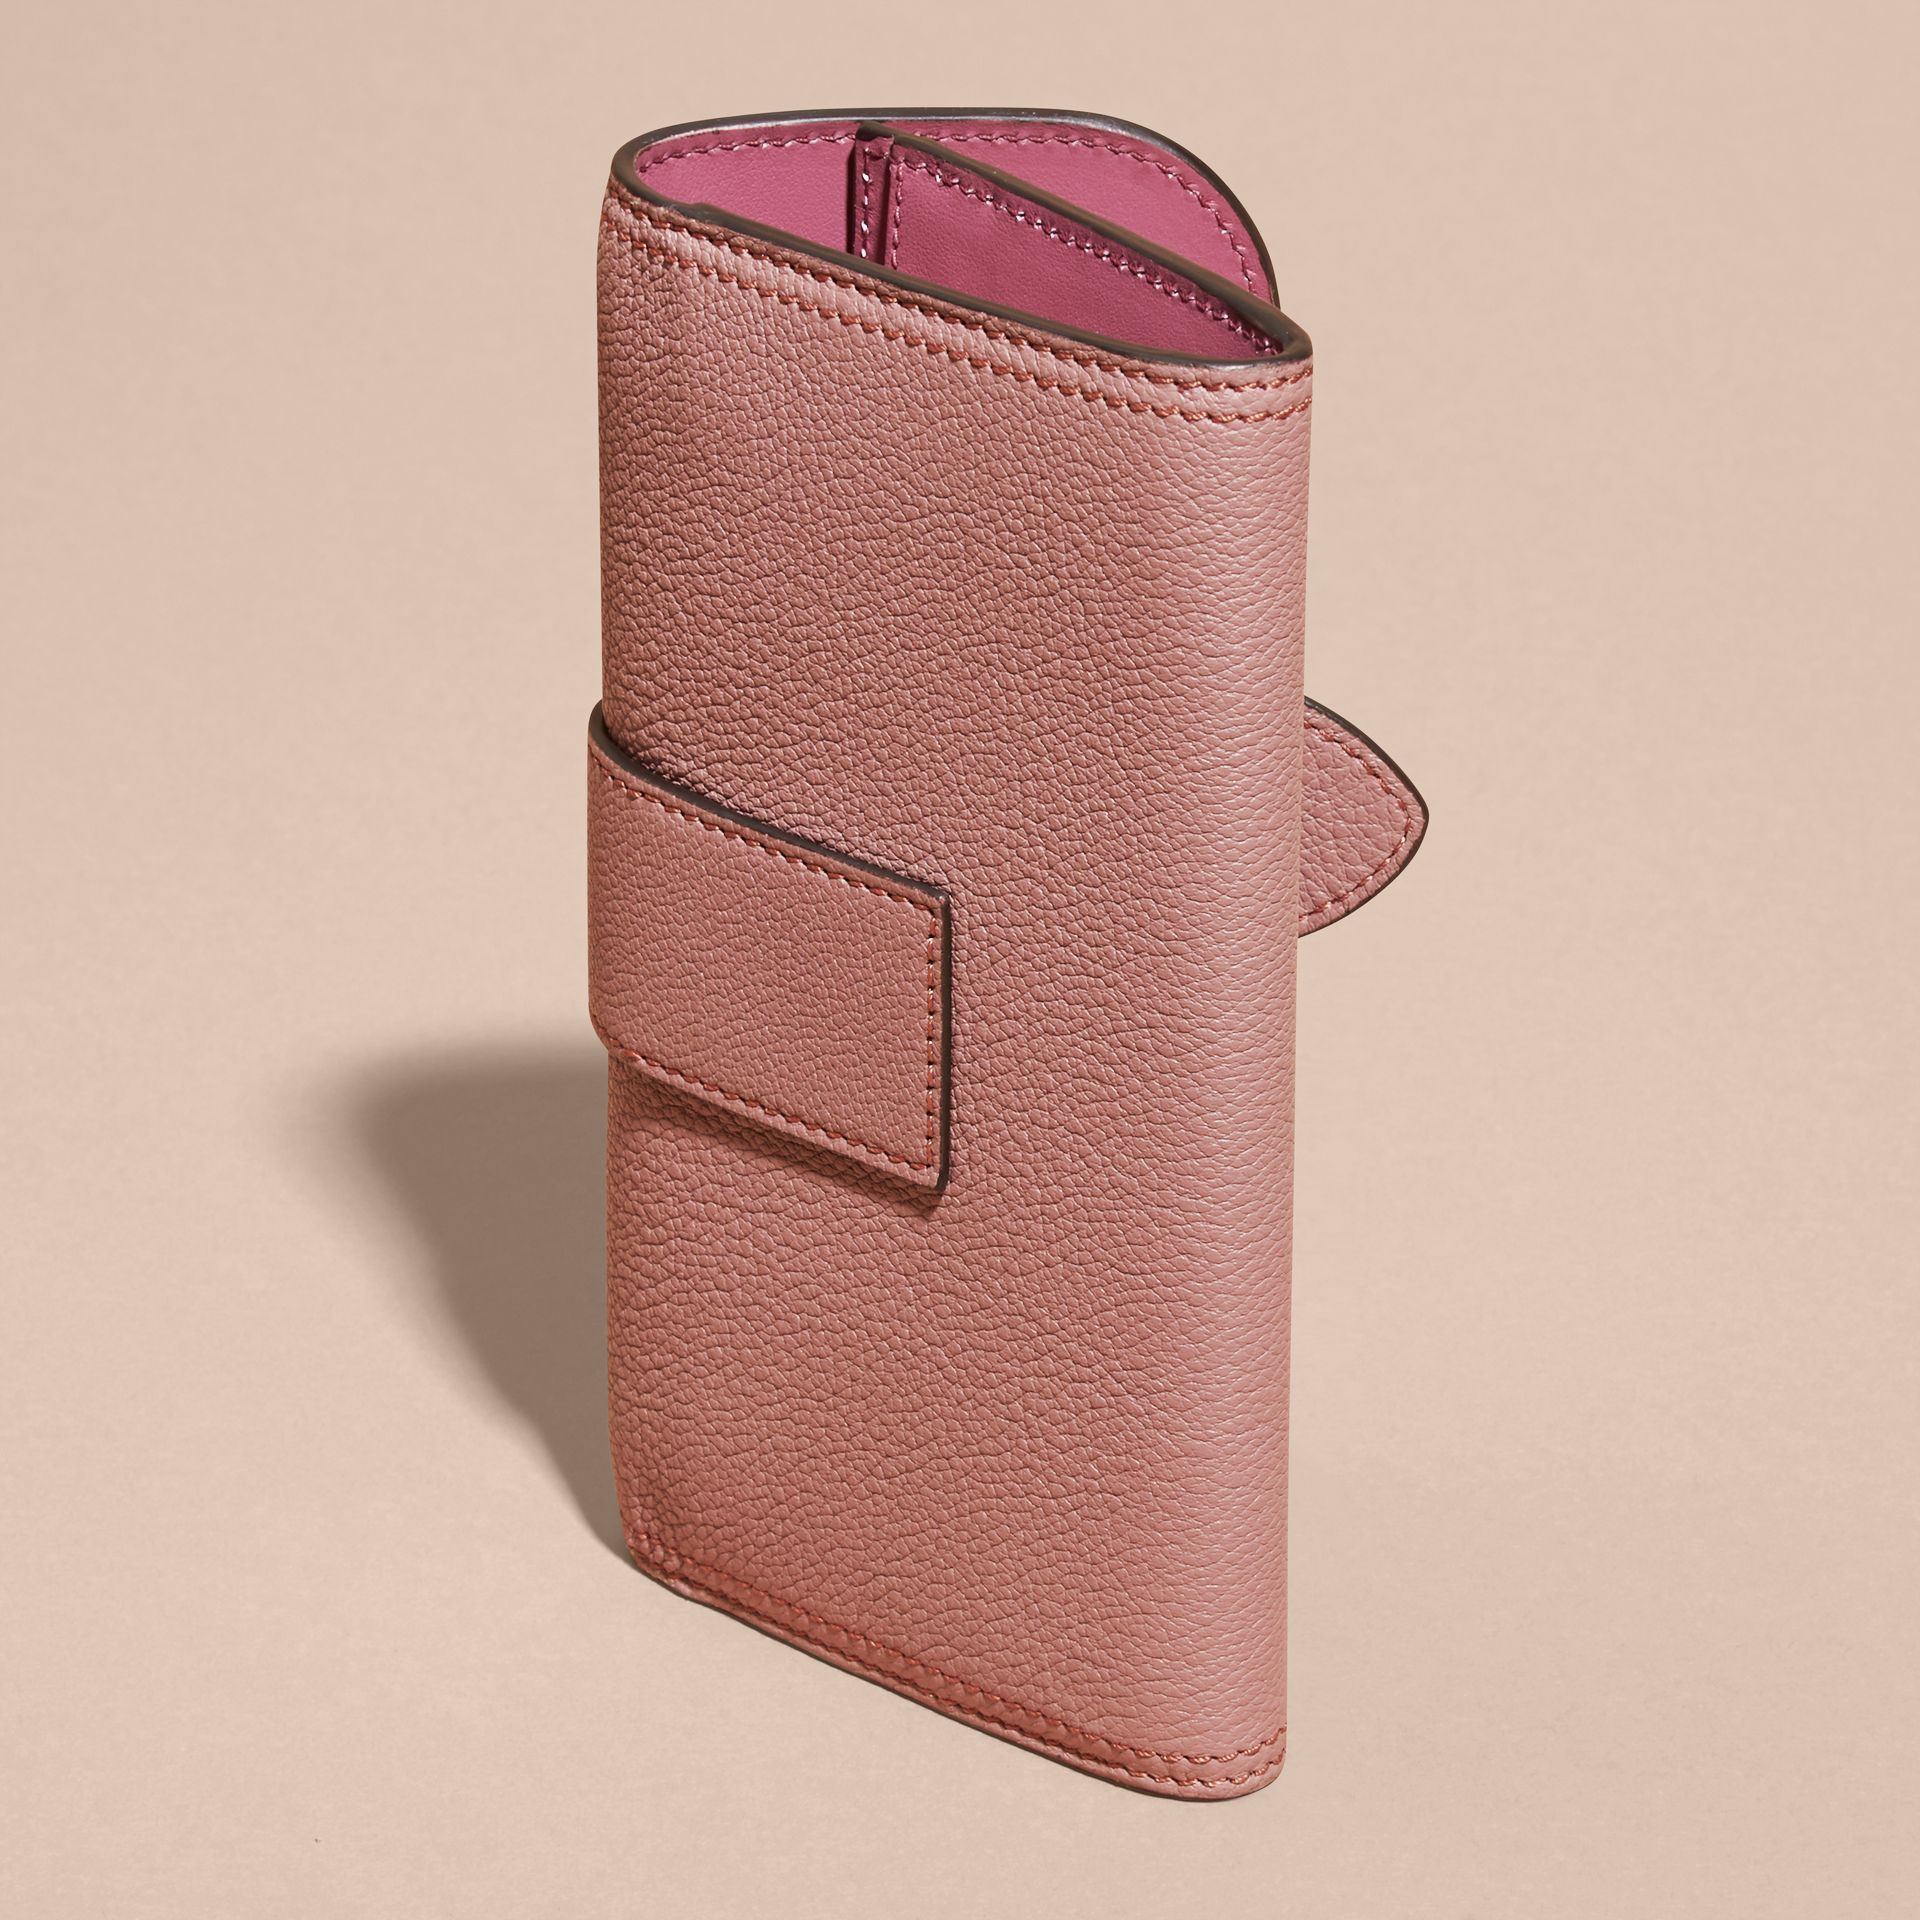 Dusty pink Textured Leather Continental Wallet Dusty Pink - gallery image 4